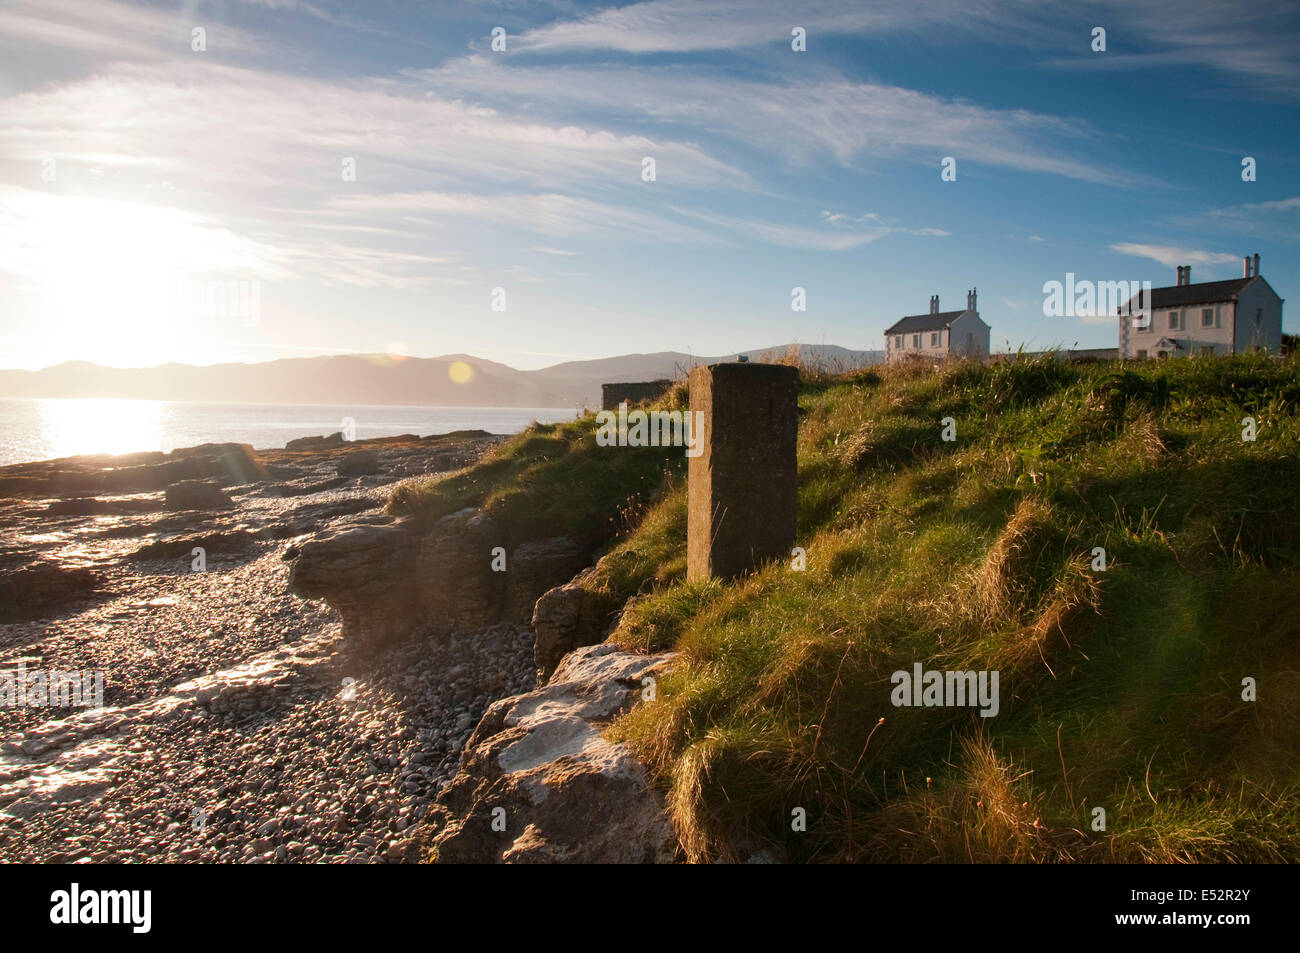 Autumn sunrise at Penmon Point, Anglesey Wales UK Stock Photo